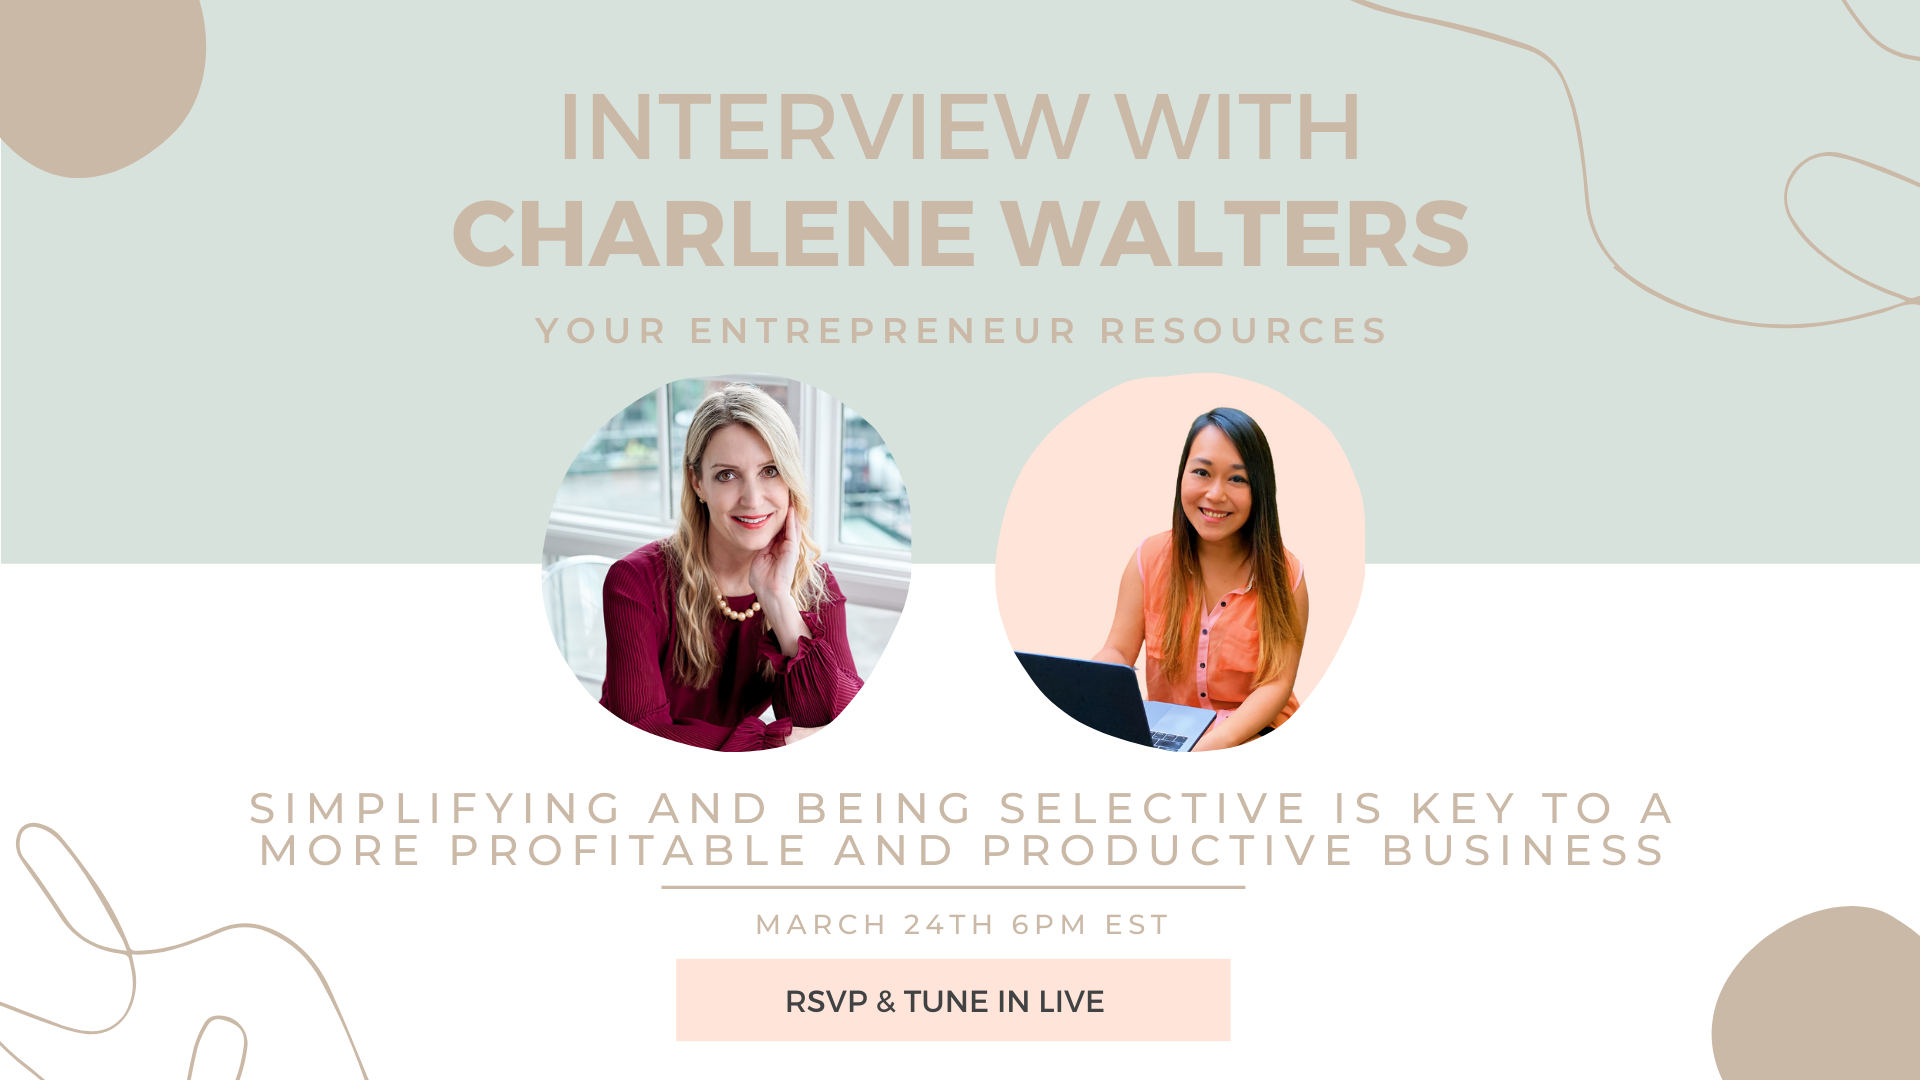 Develop an Entrepreneurial Mindset with Charlene Walters